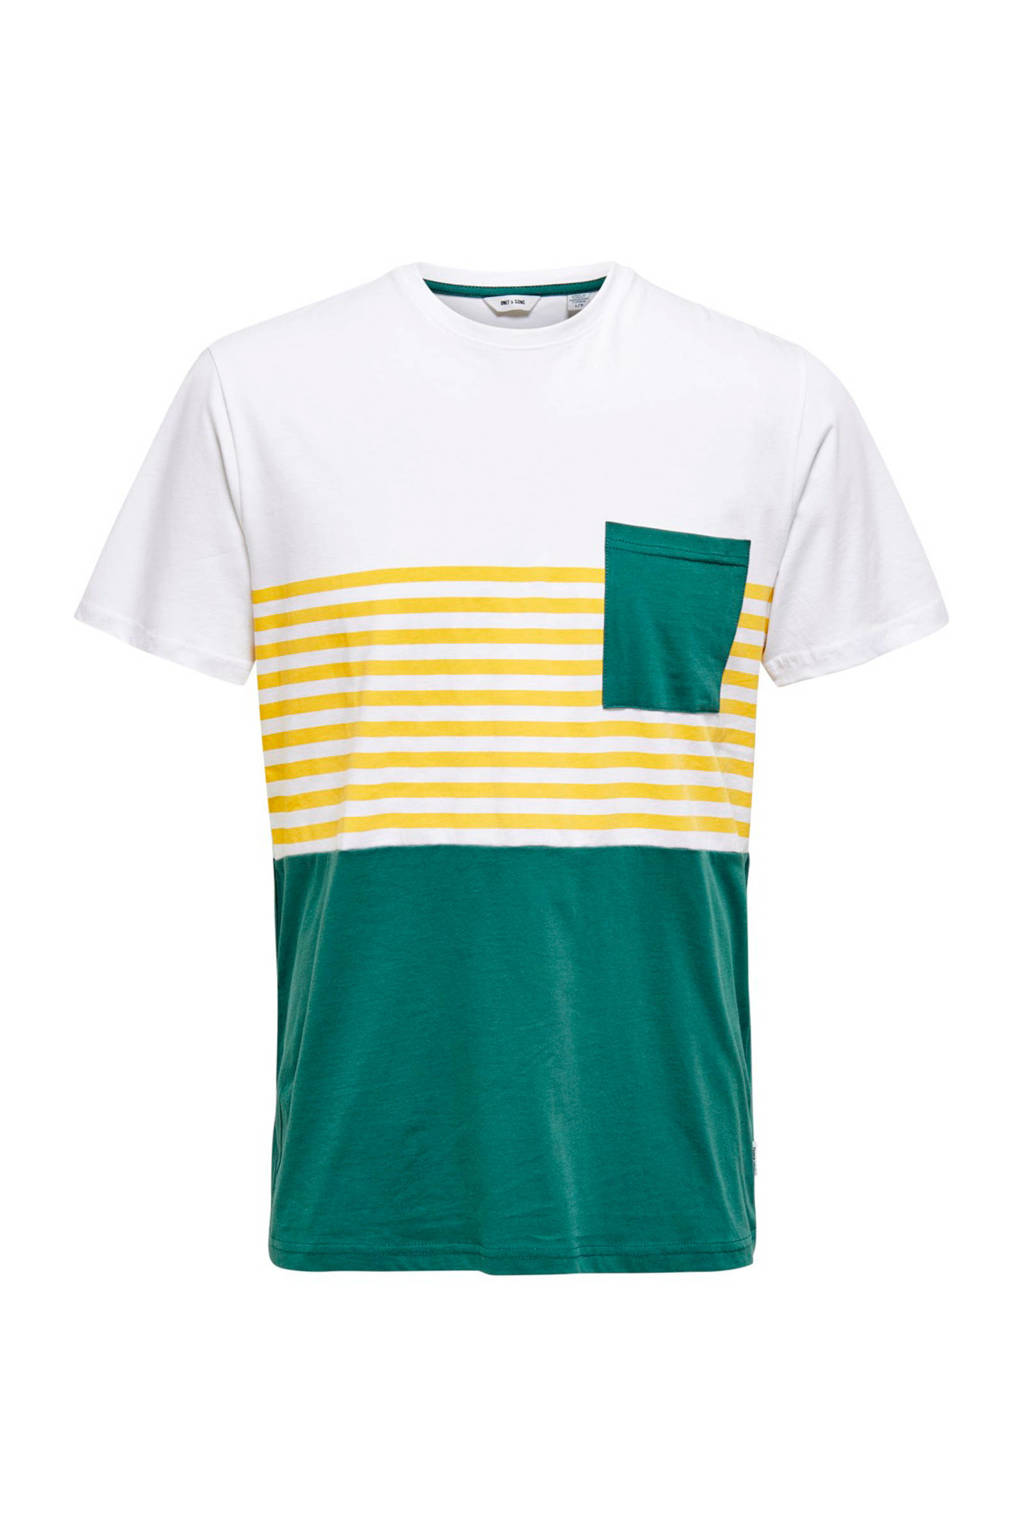 ONLY & SONS gestreept T-shirt turquoise, Turquoise